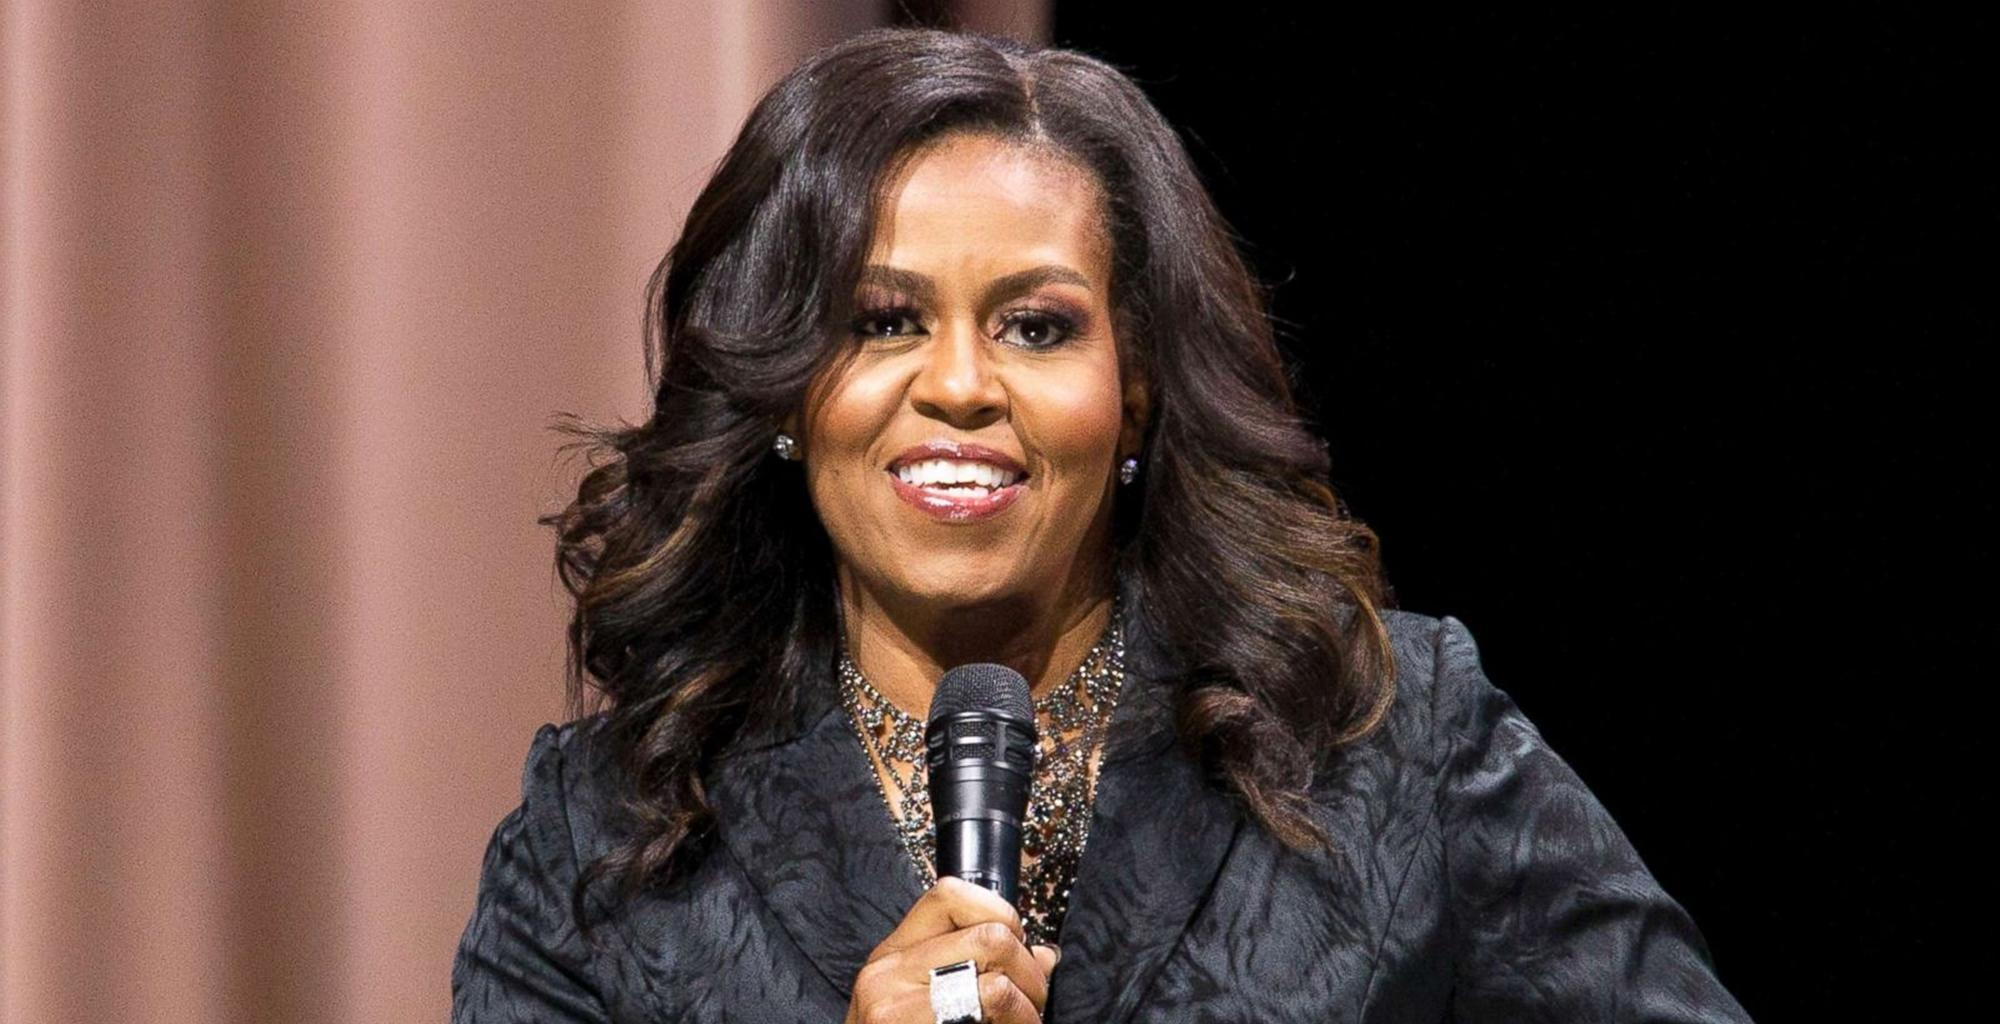 Michelle Obama Is Being Begged By Democrats And Republicans To Run Against Donald Trump, She Responds